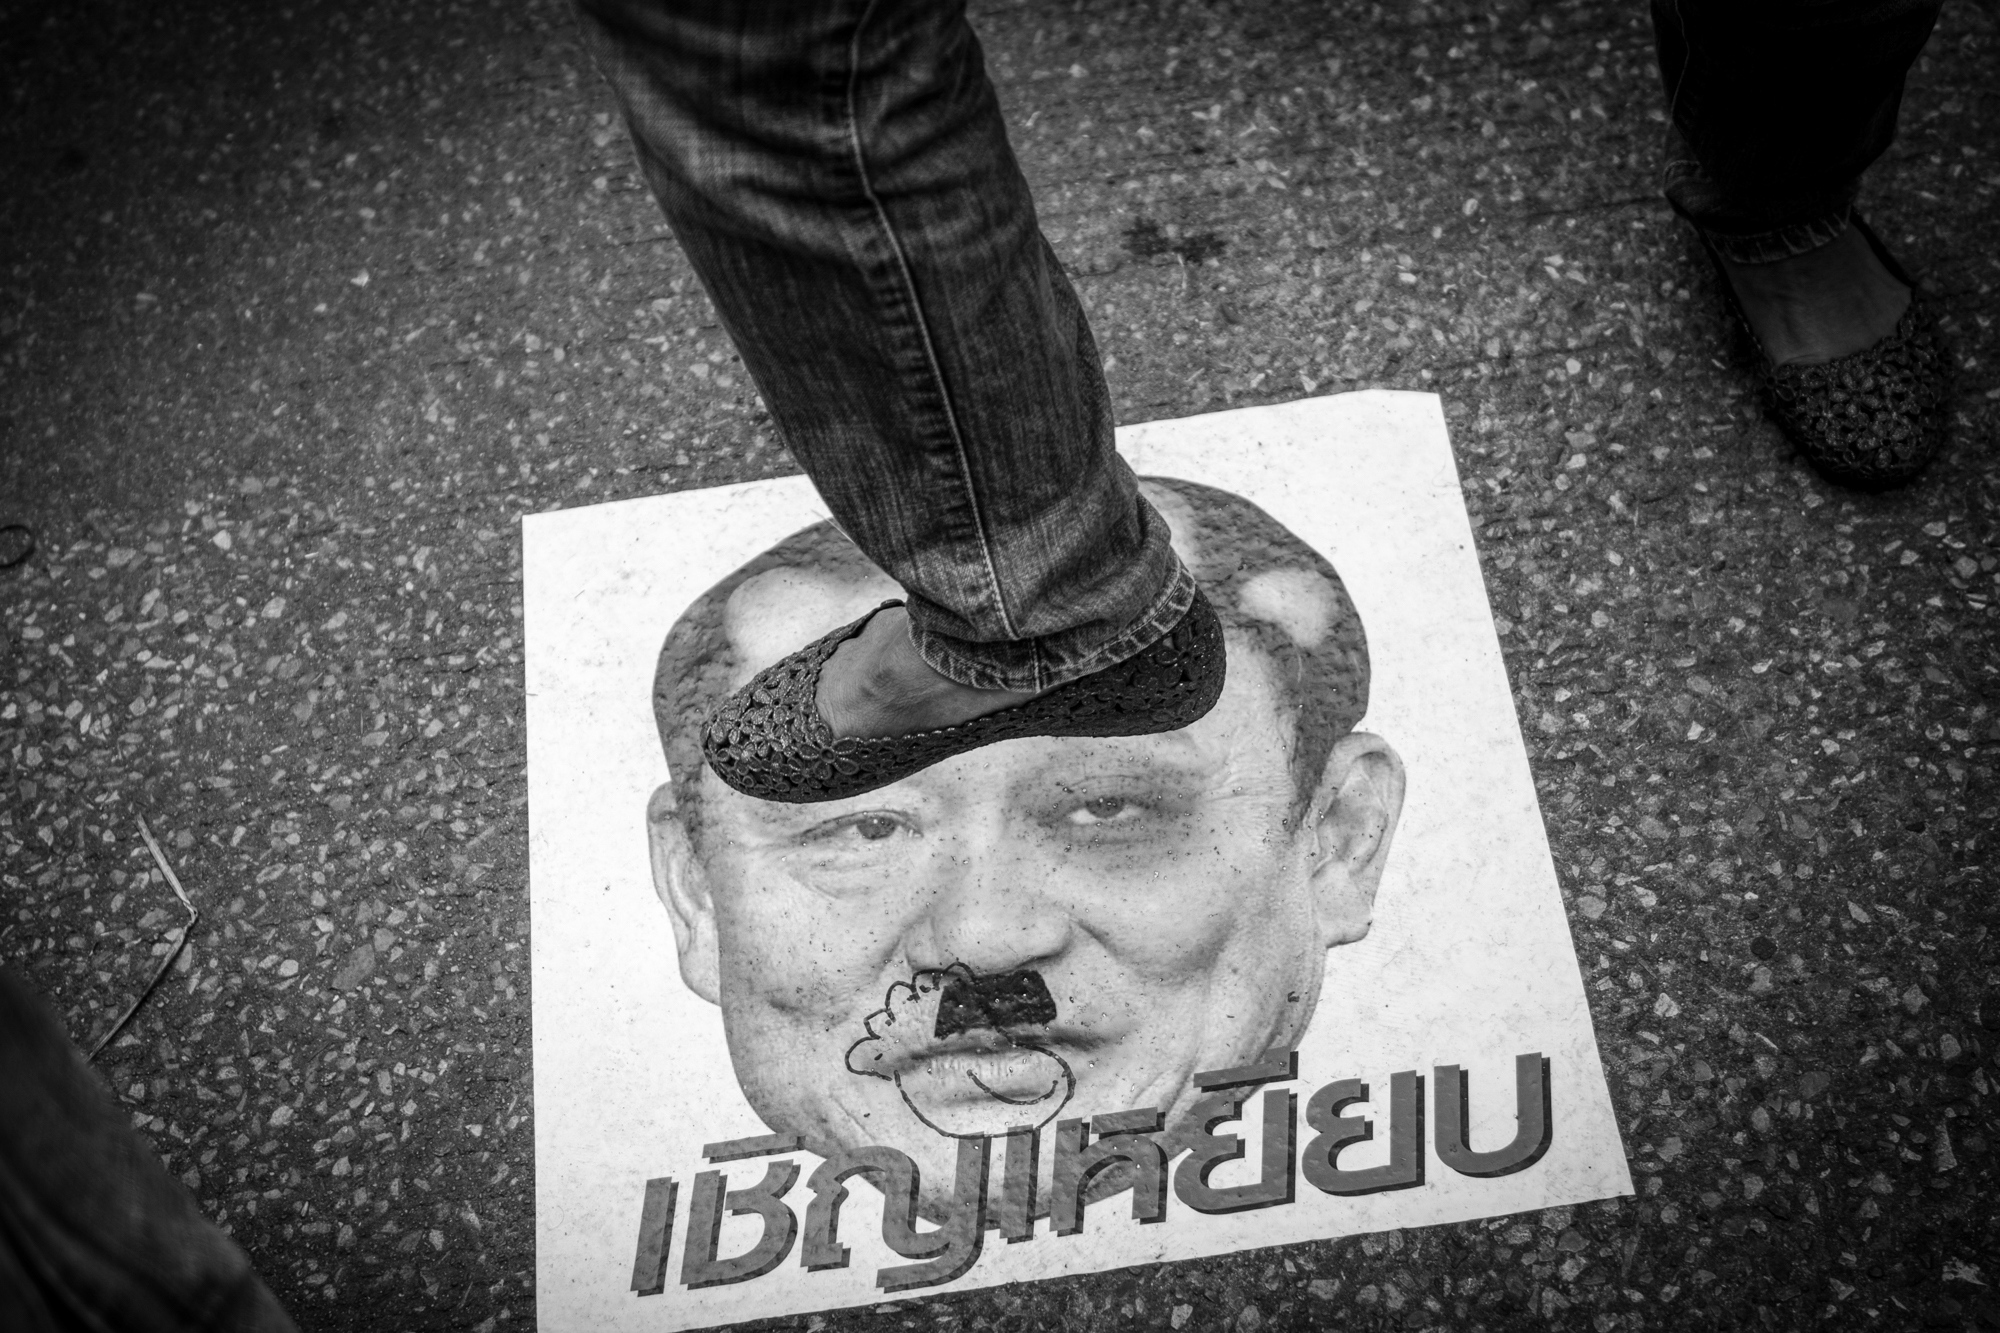 An image of exiled Prime Minister Thaksin Shinawatra is defaced and stomped on by his detractors in the streets of Bangkok.